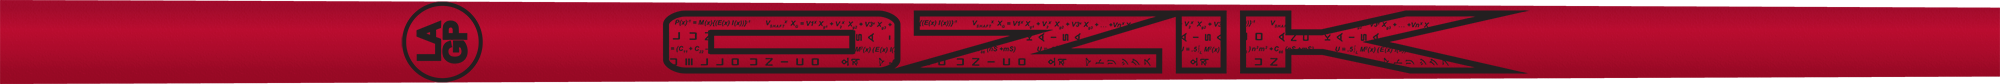 Ozik White Tie: Candy Apple Red Black Matte - Wood 50 A